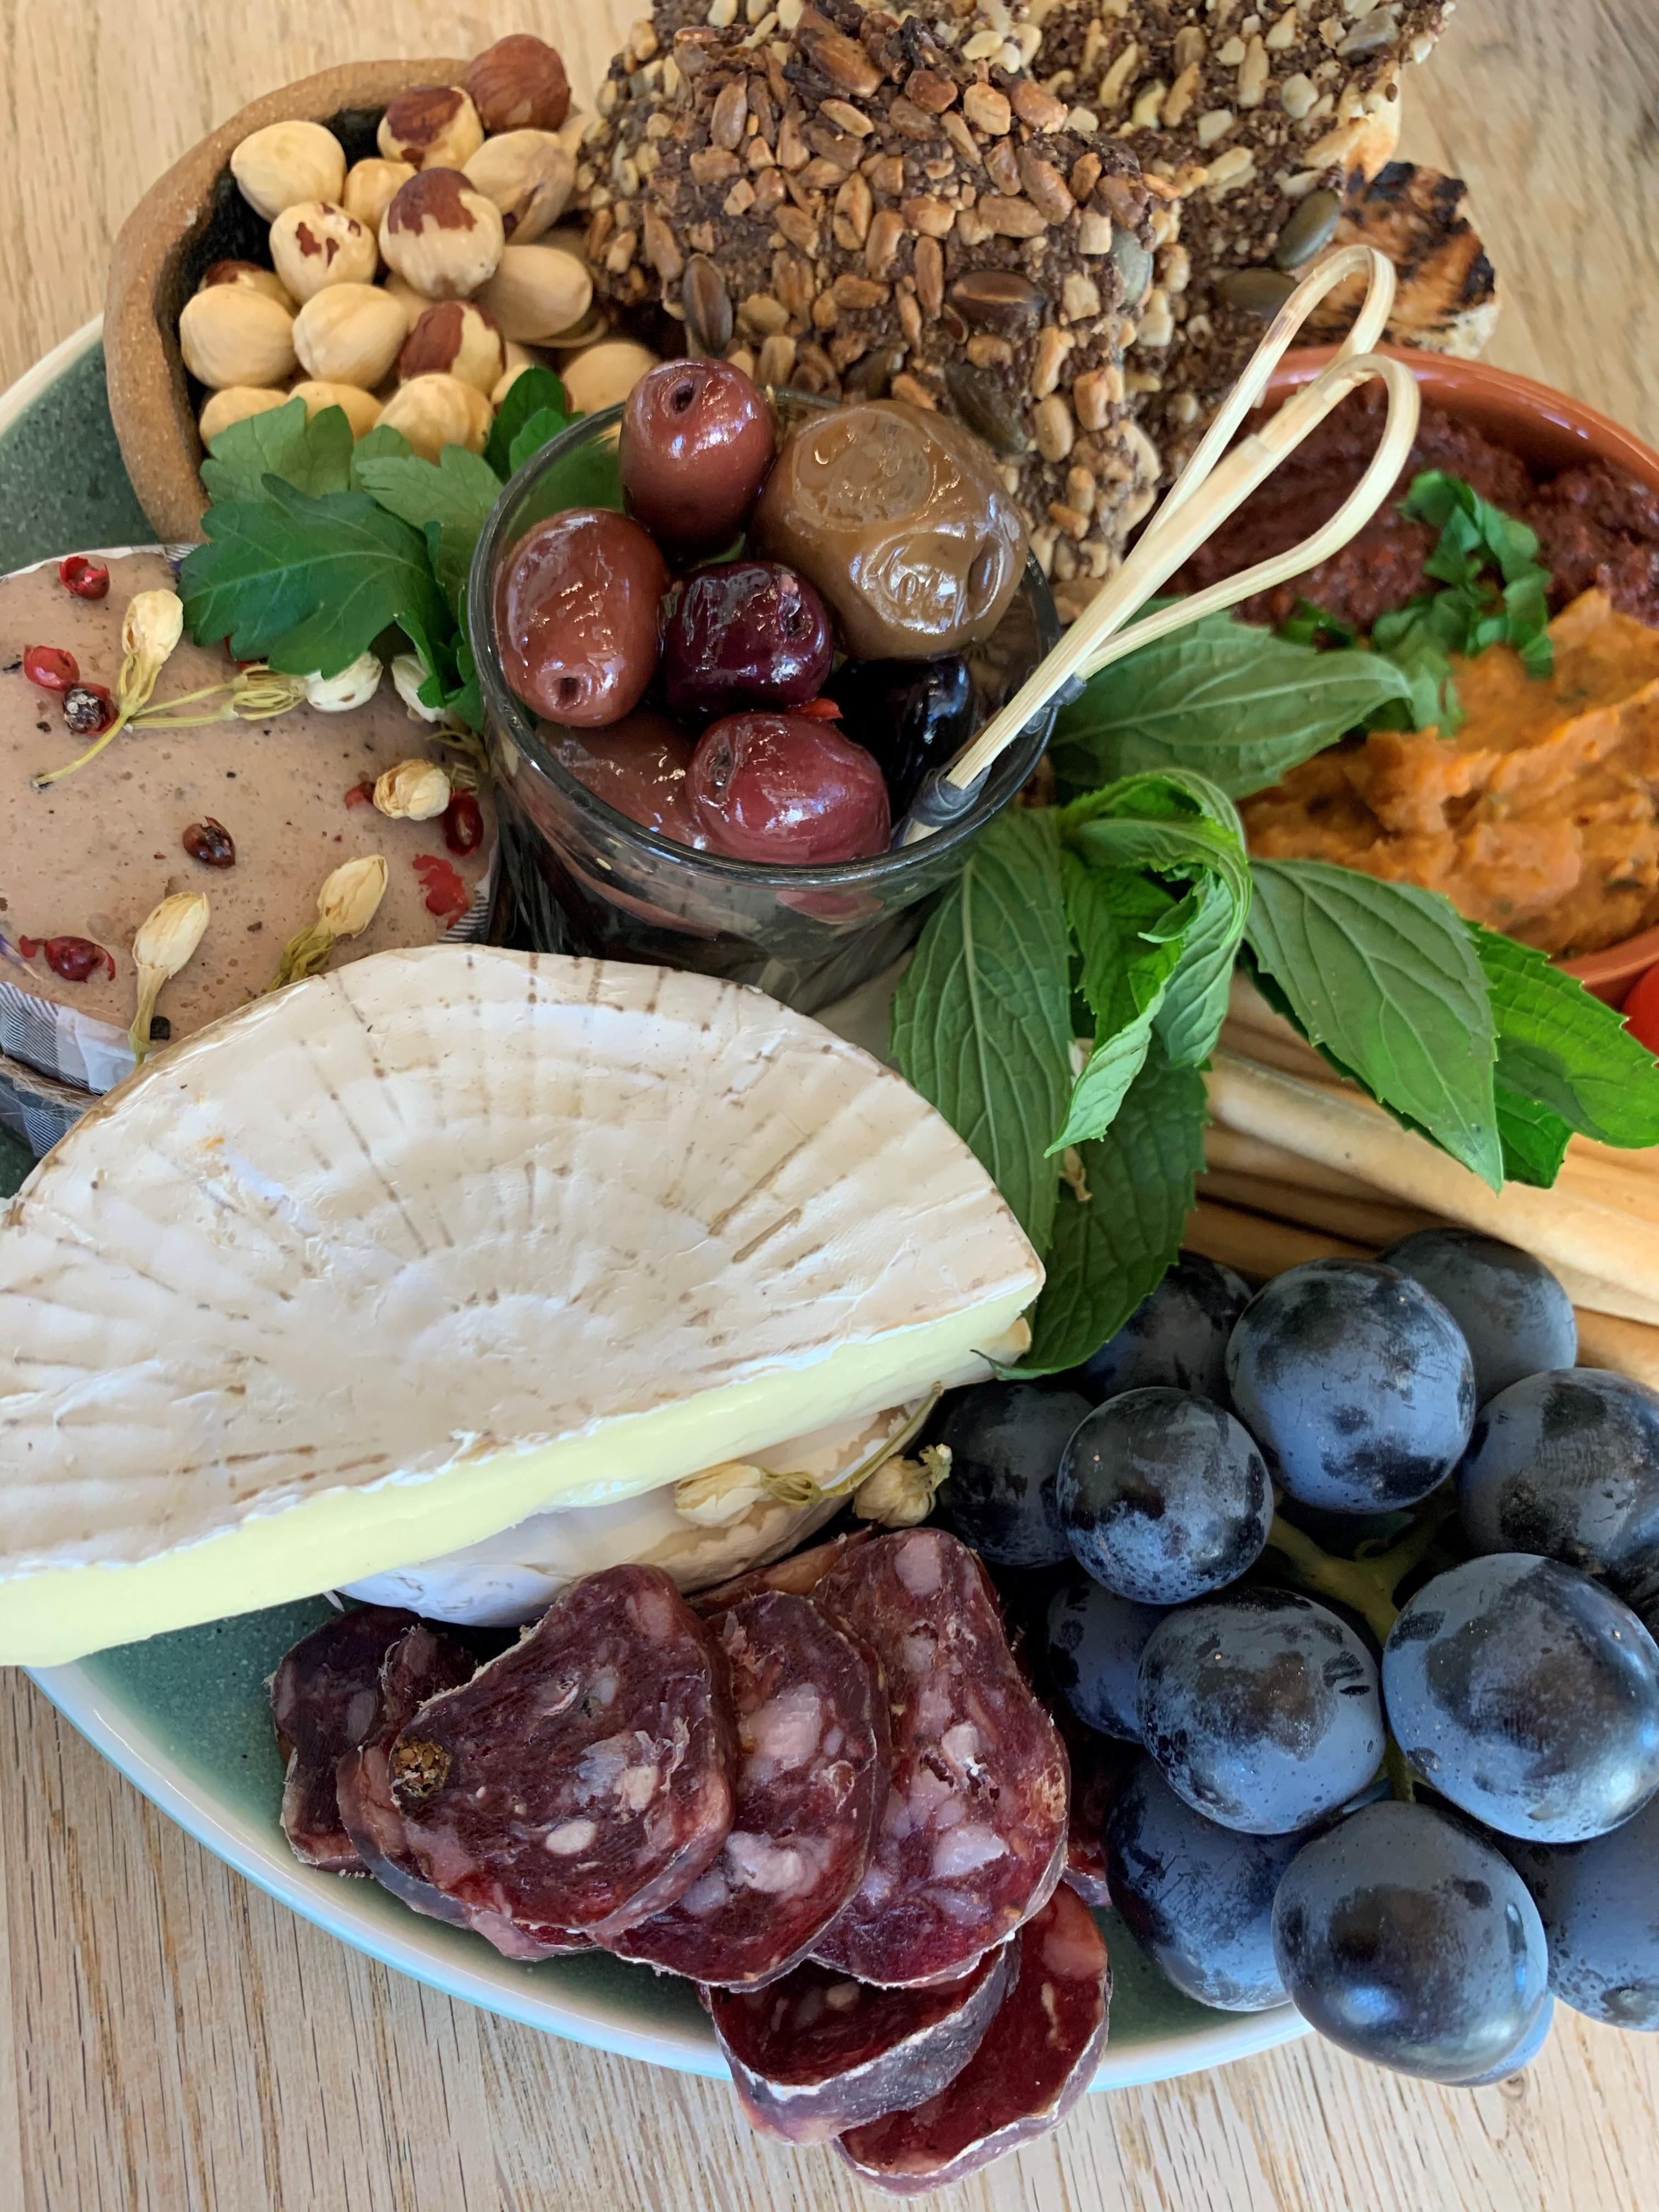 platter of local produce